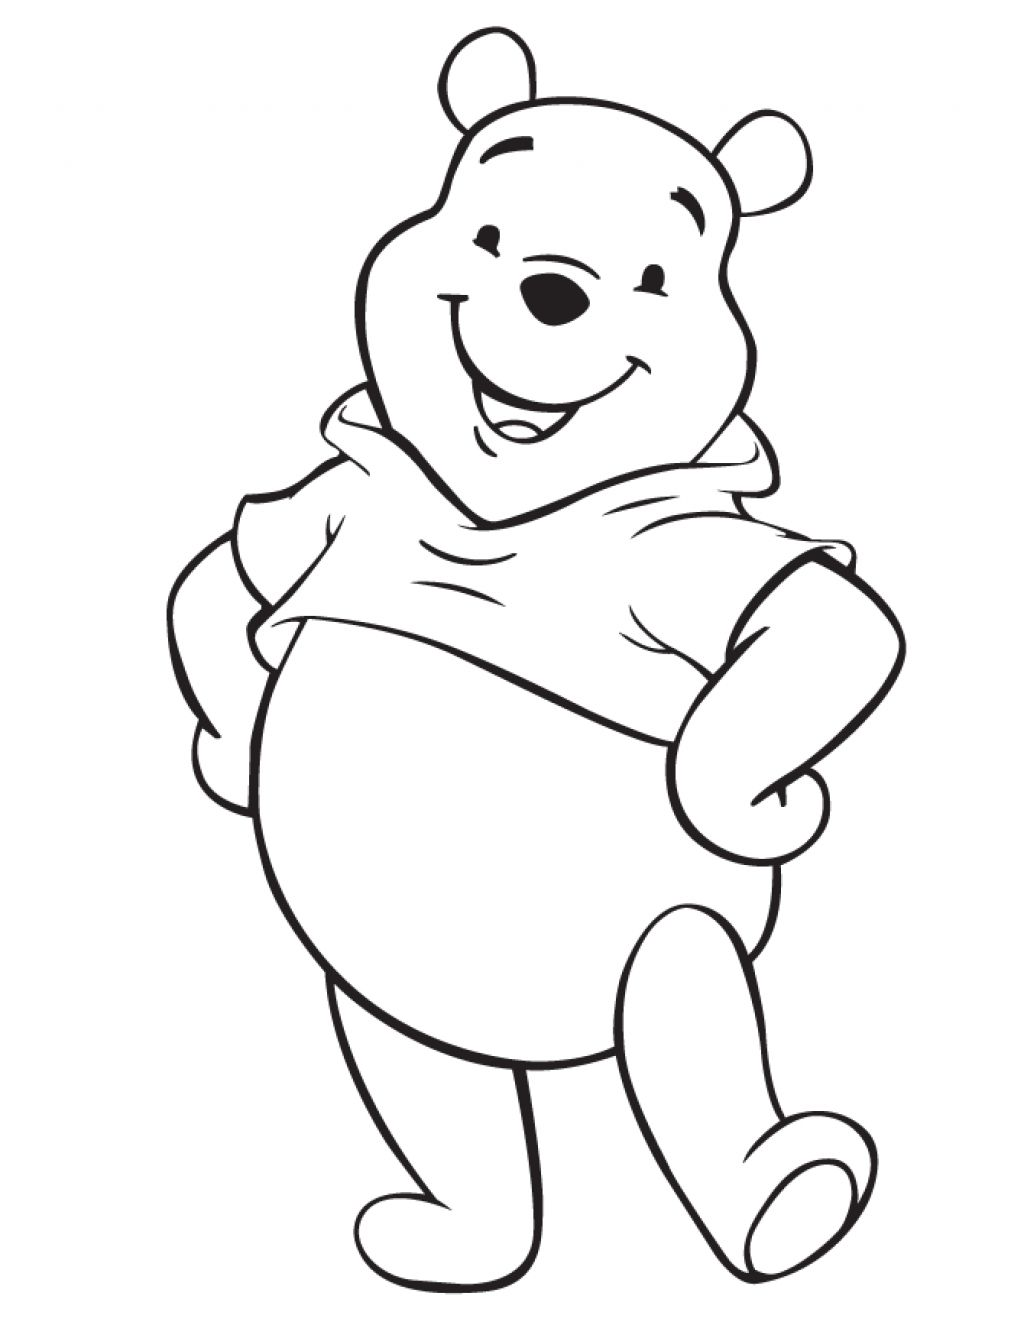 Disney Characters Coloring Pages Easy Baby Disney Cartoon Characters